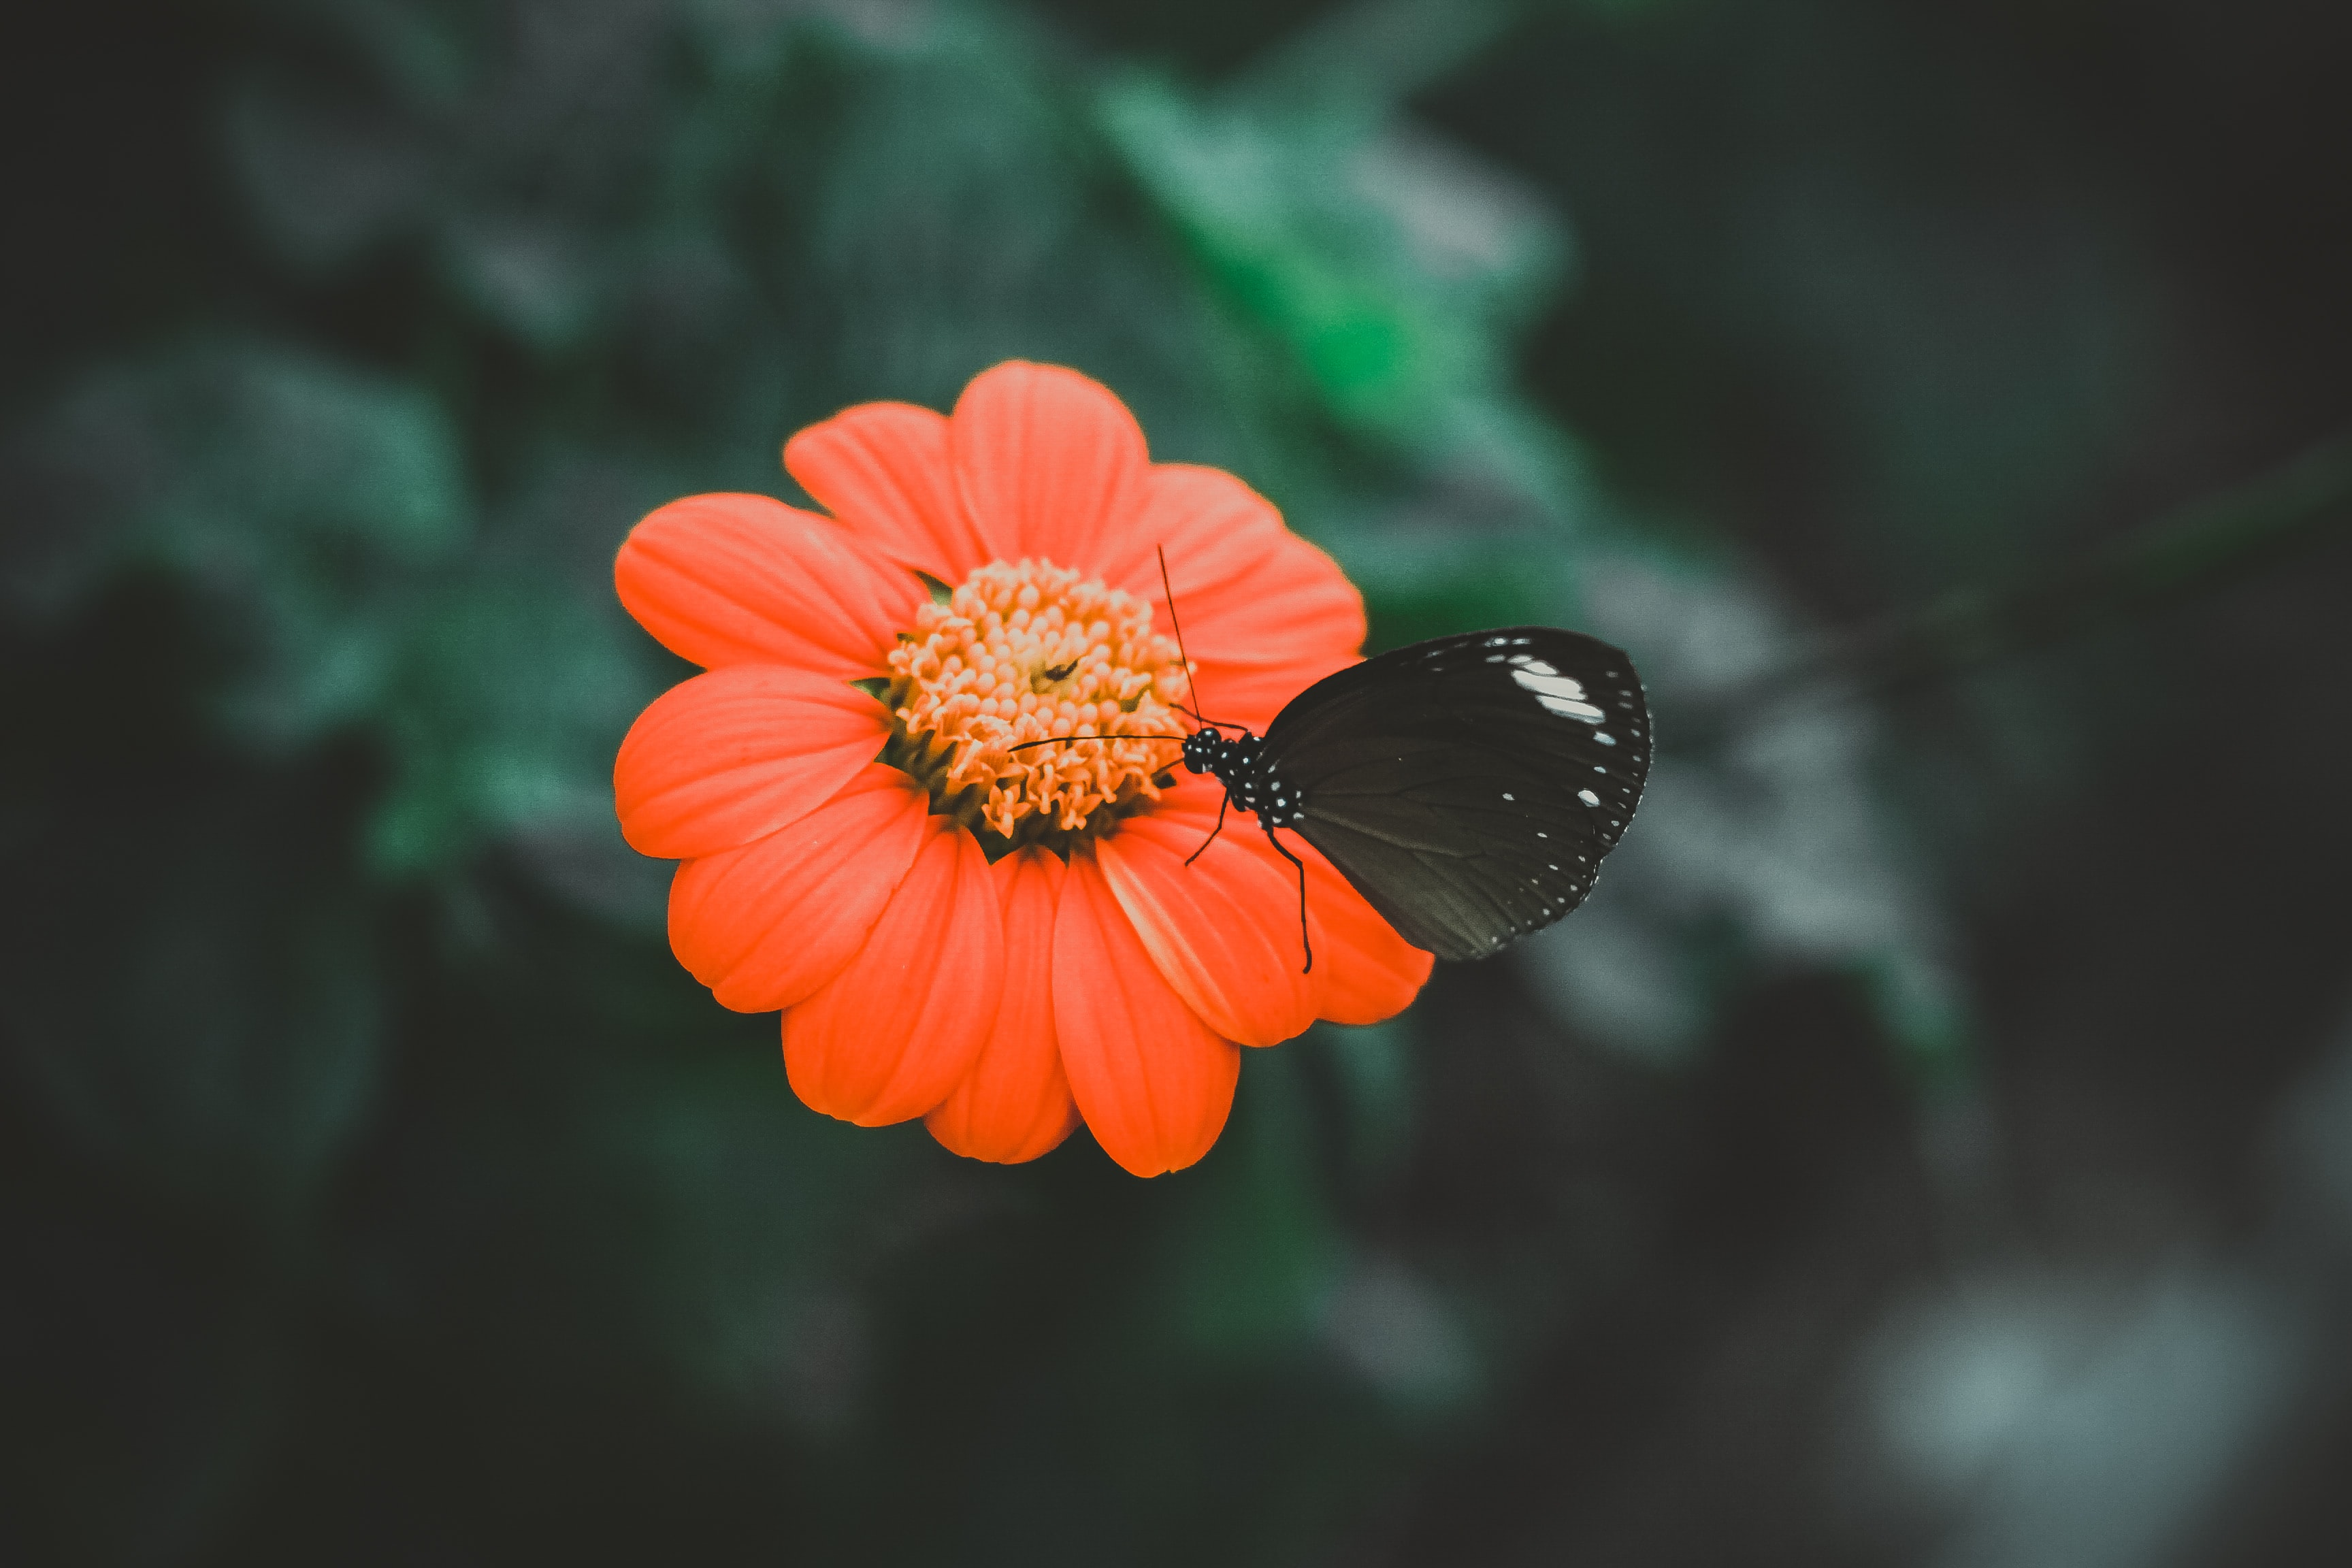 A black butterfly on a bright red flower